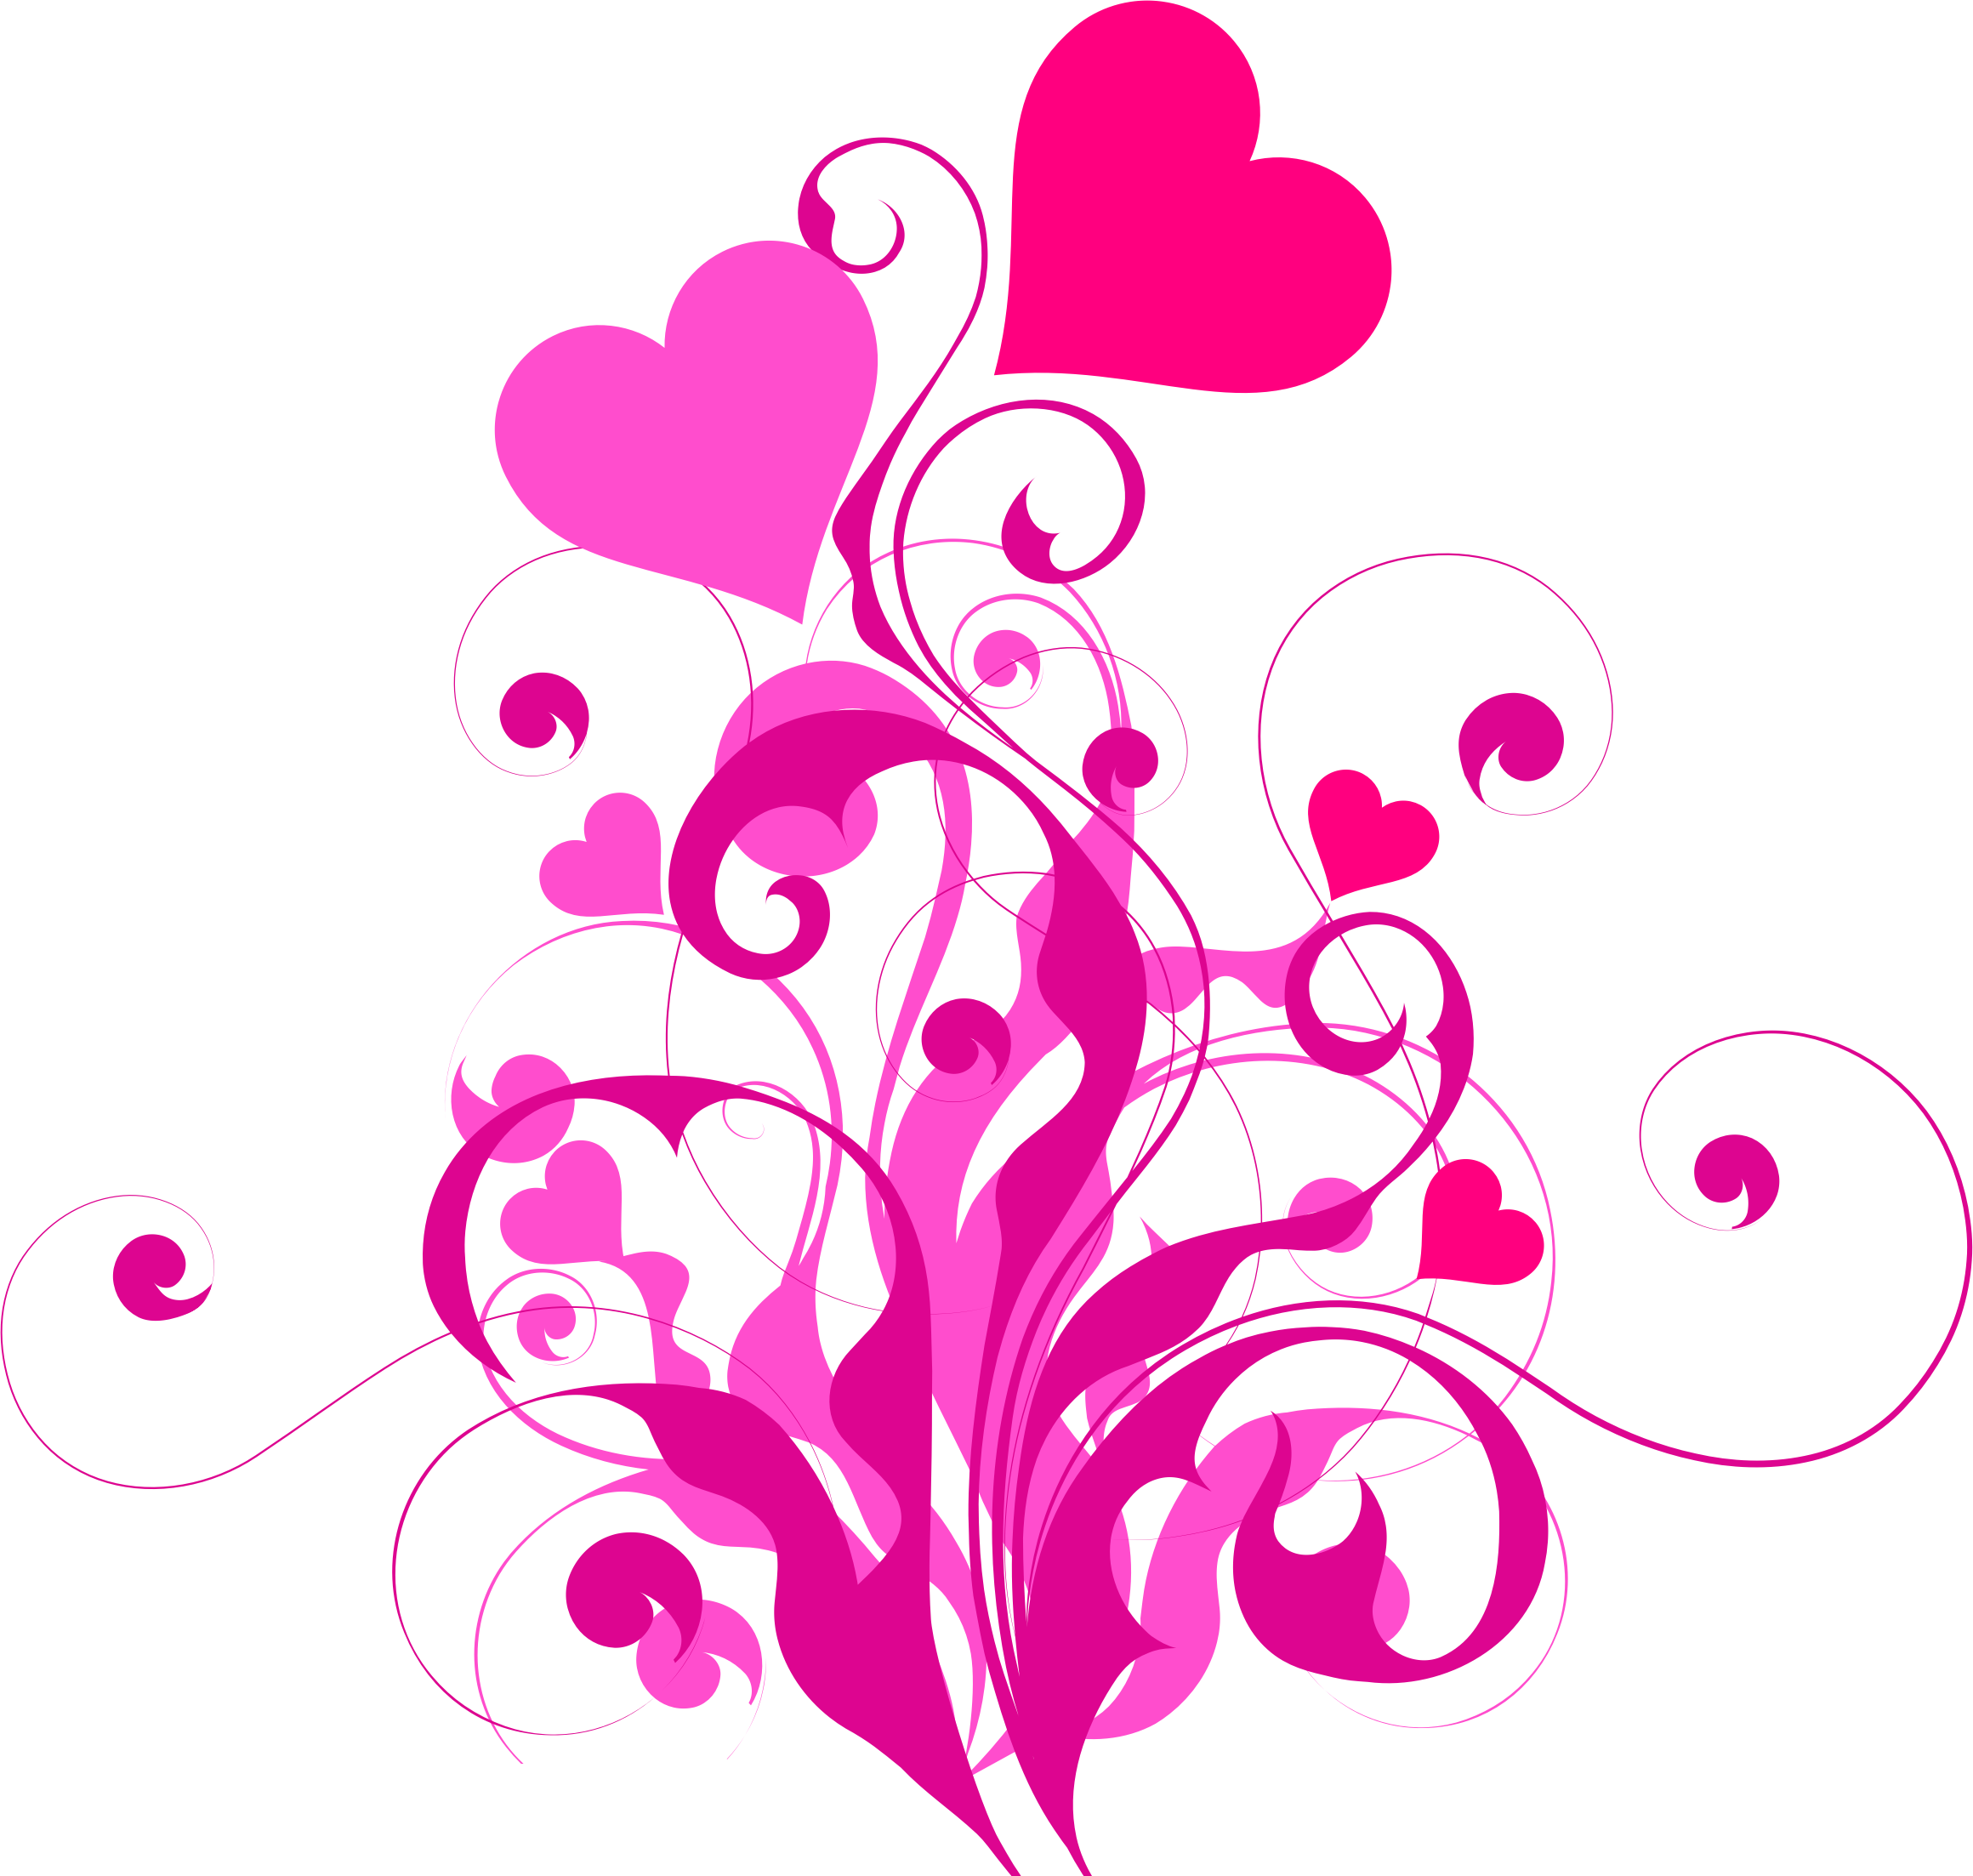 Pink flourish png. Heart icons free and